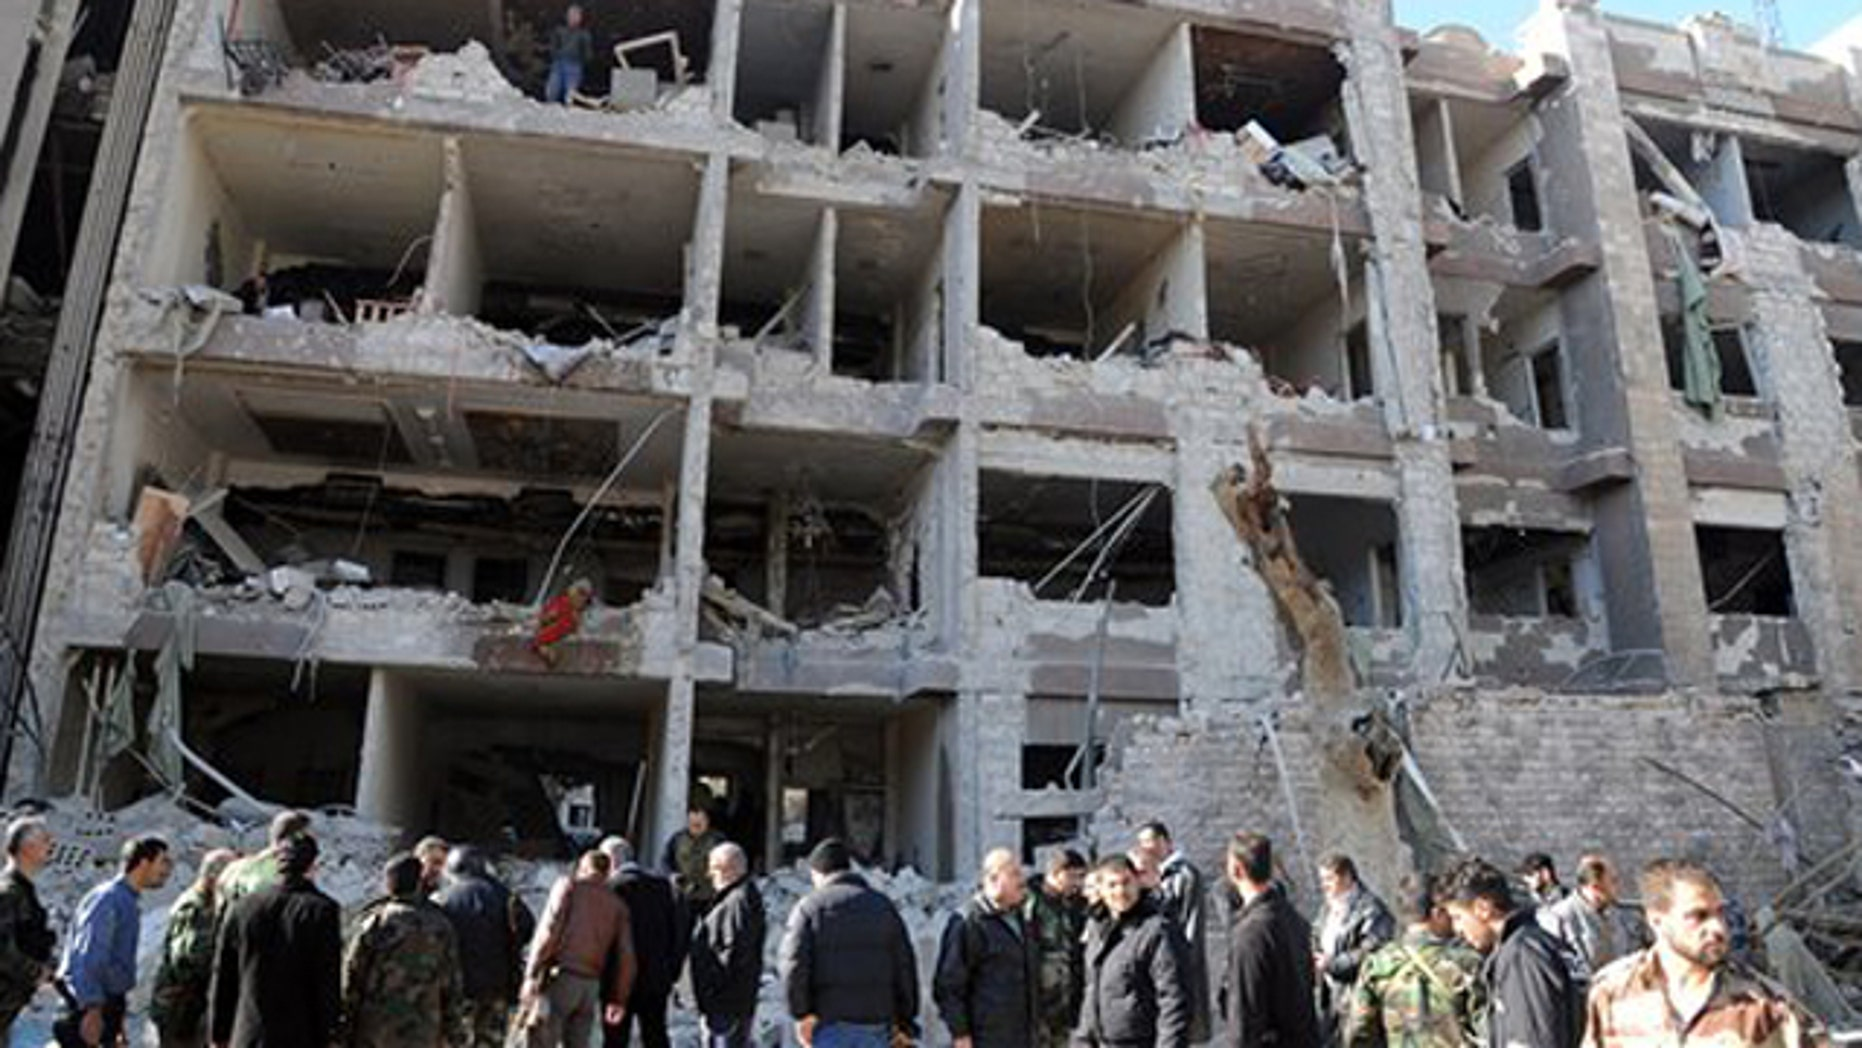 March 17, 2012: In this photo released by the Syrian official news agency SANA, Syrian security officers investigate a damaged building of the air intelligence forces, which was attacked by one of two explosions, in Damascus, Syria.